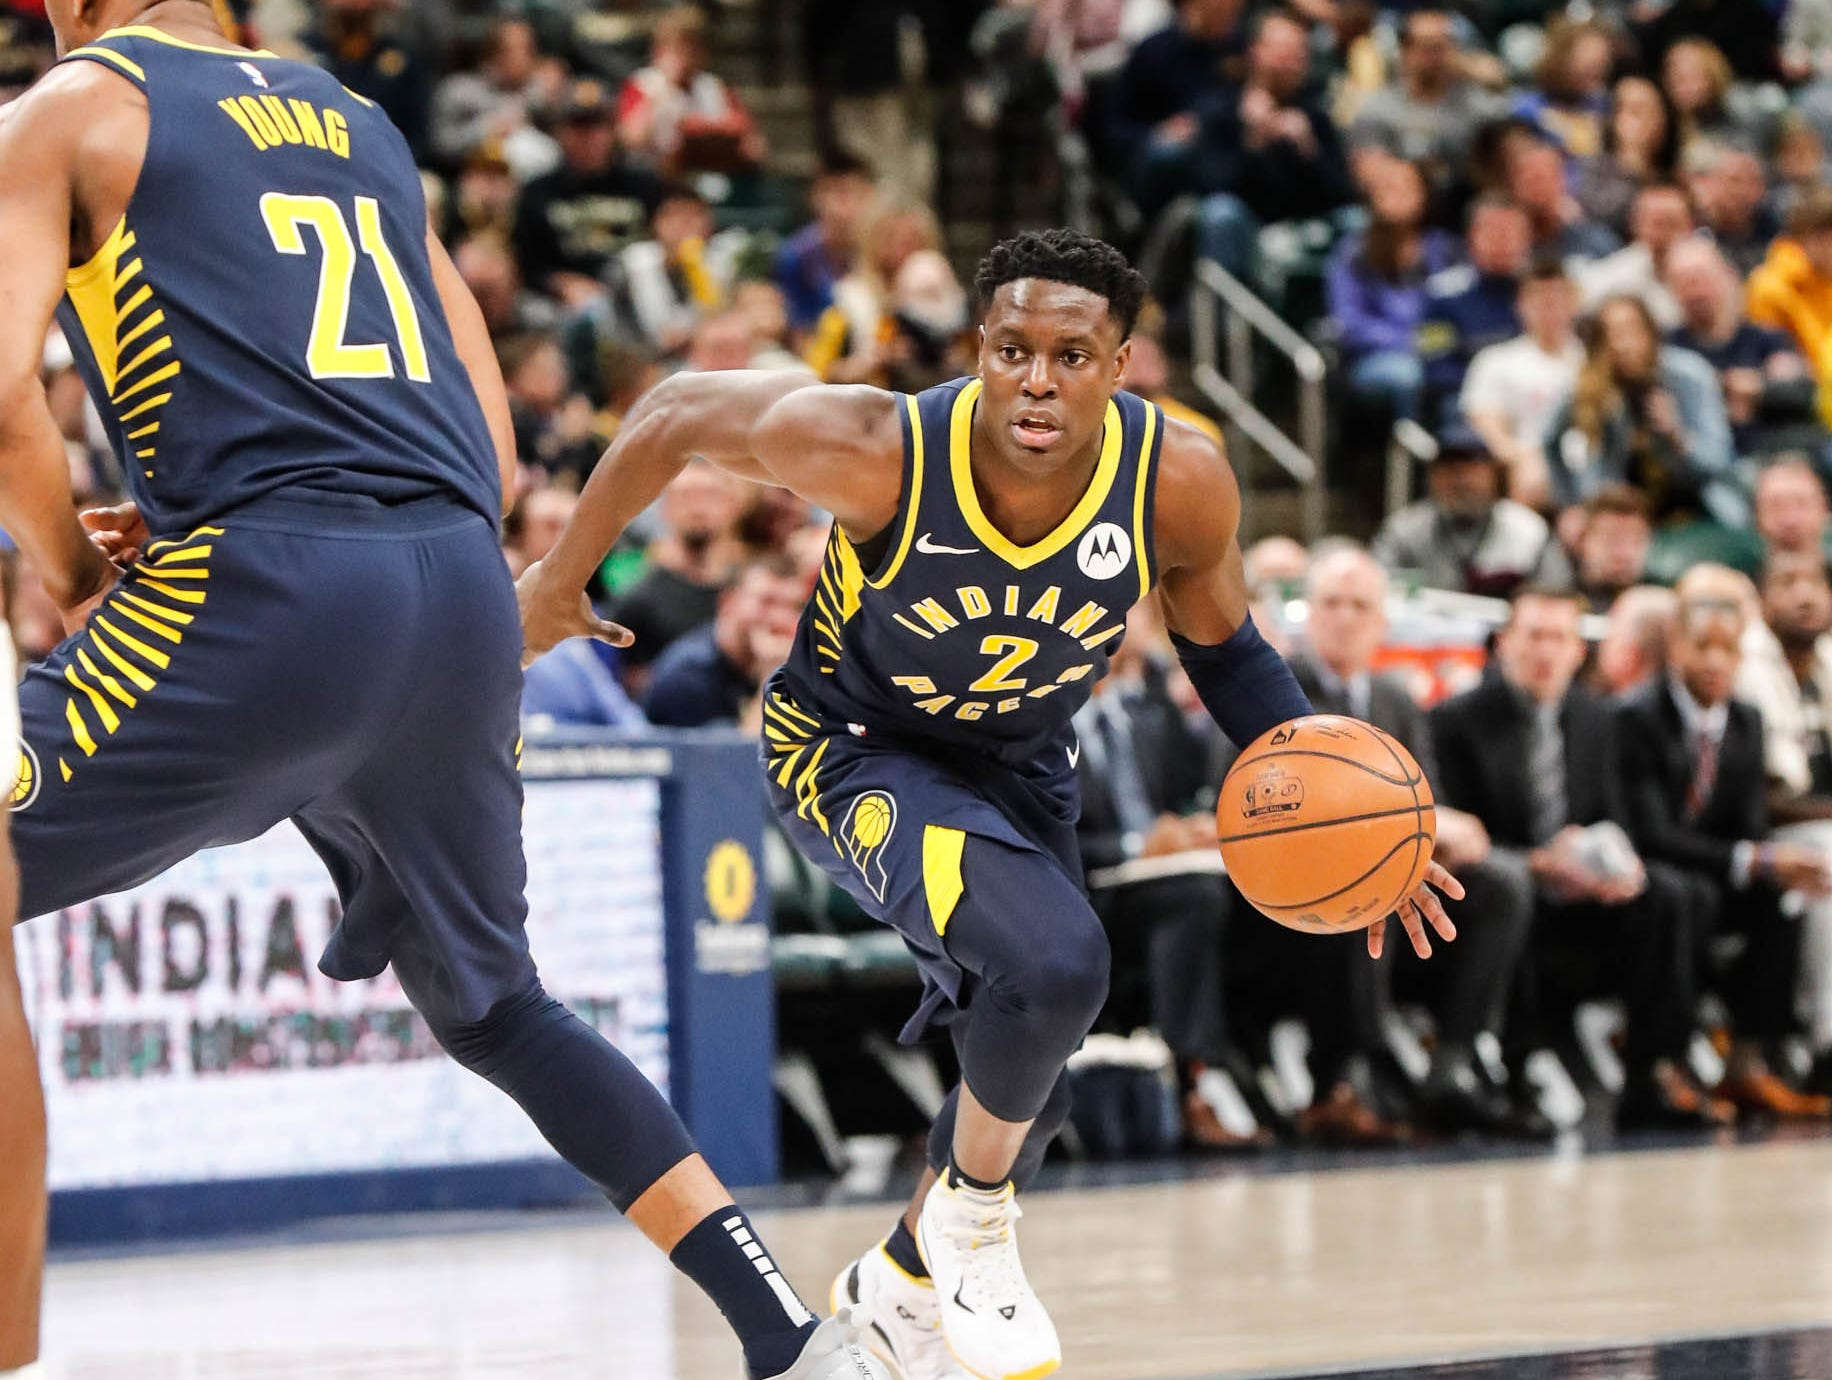 Indiana Pacers guard Darren Collison (2) dribbles around team mate Indiana Pacers forward Thaddeus Young (21), during a game between the Pacers and Hornets at Bankers Life Fieldhouse on Sunday, Jan. 20, 2019.